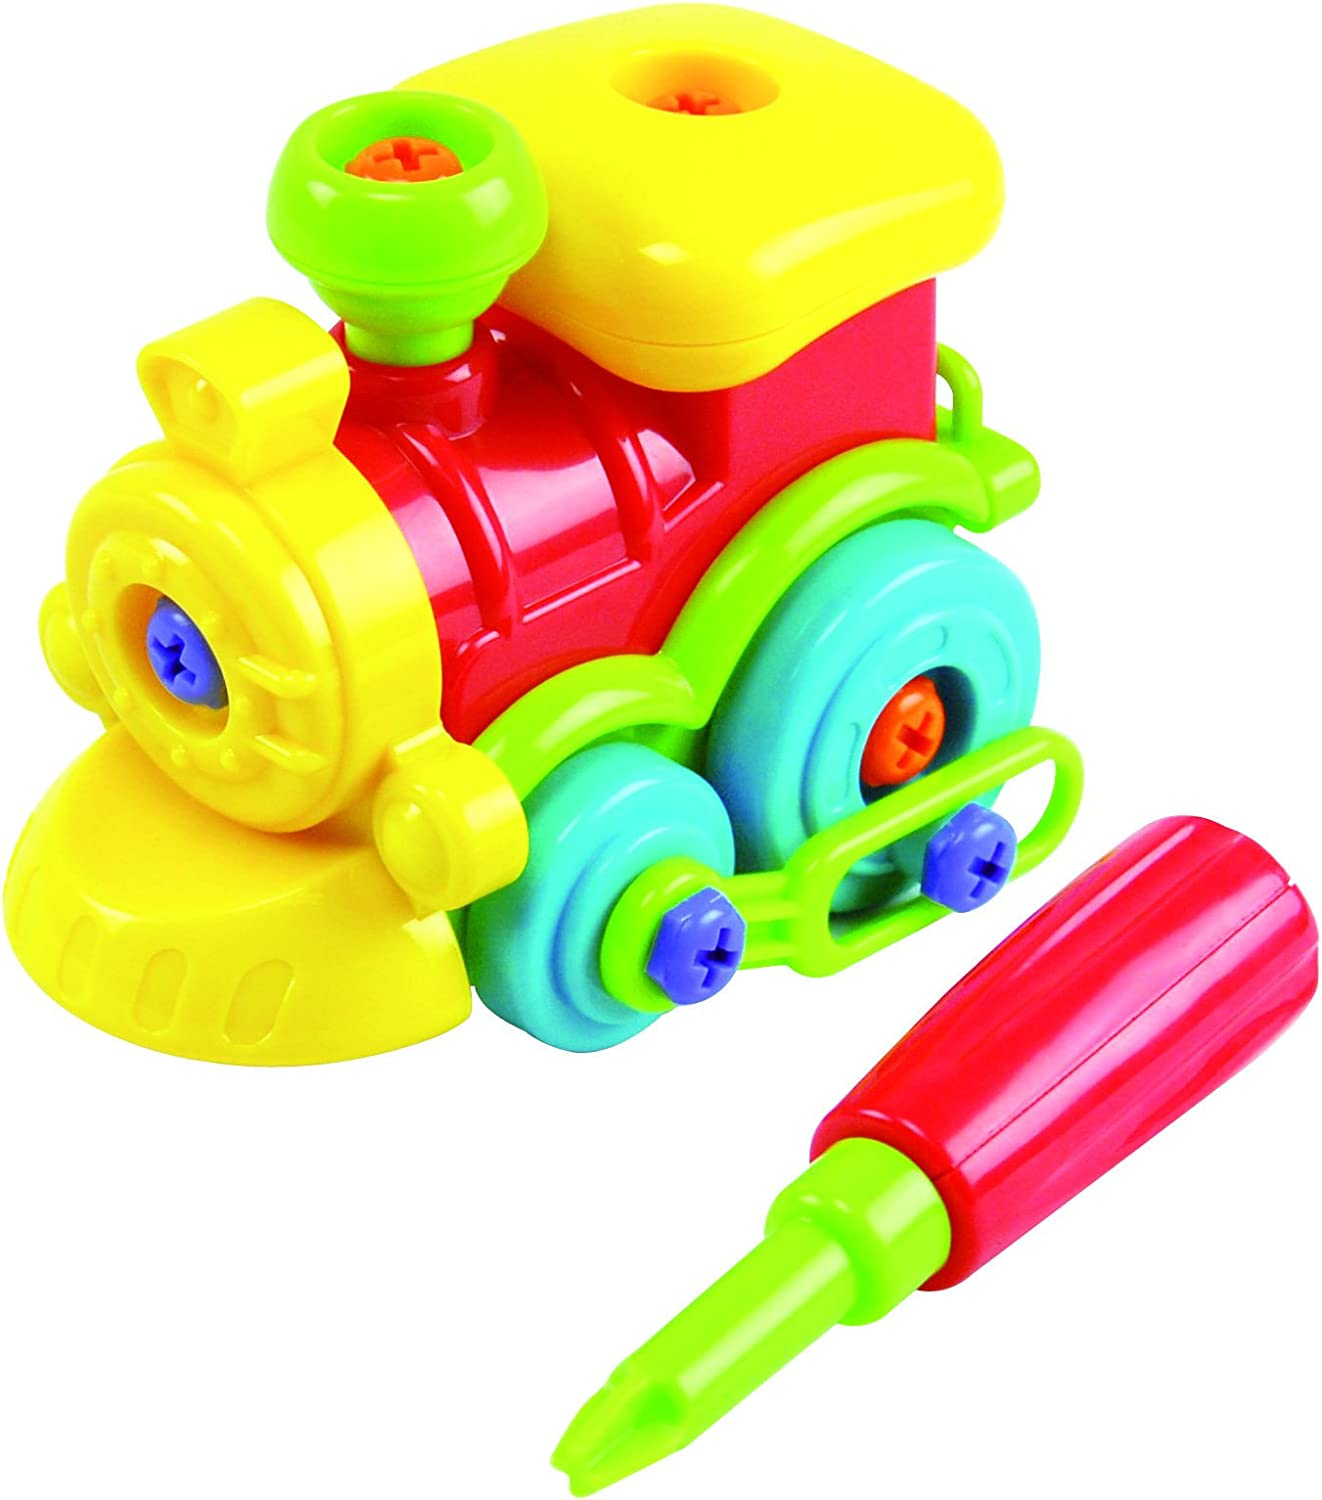 Motor Works Train by Discovery Toys